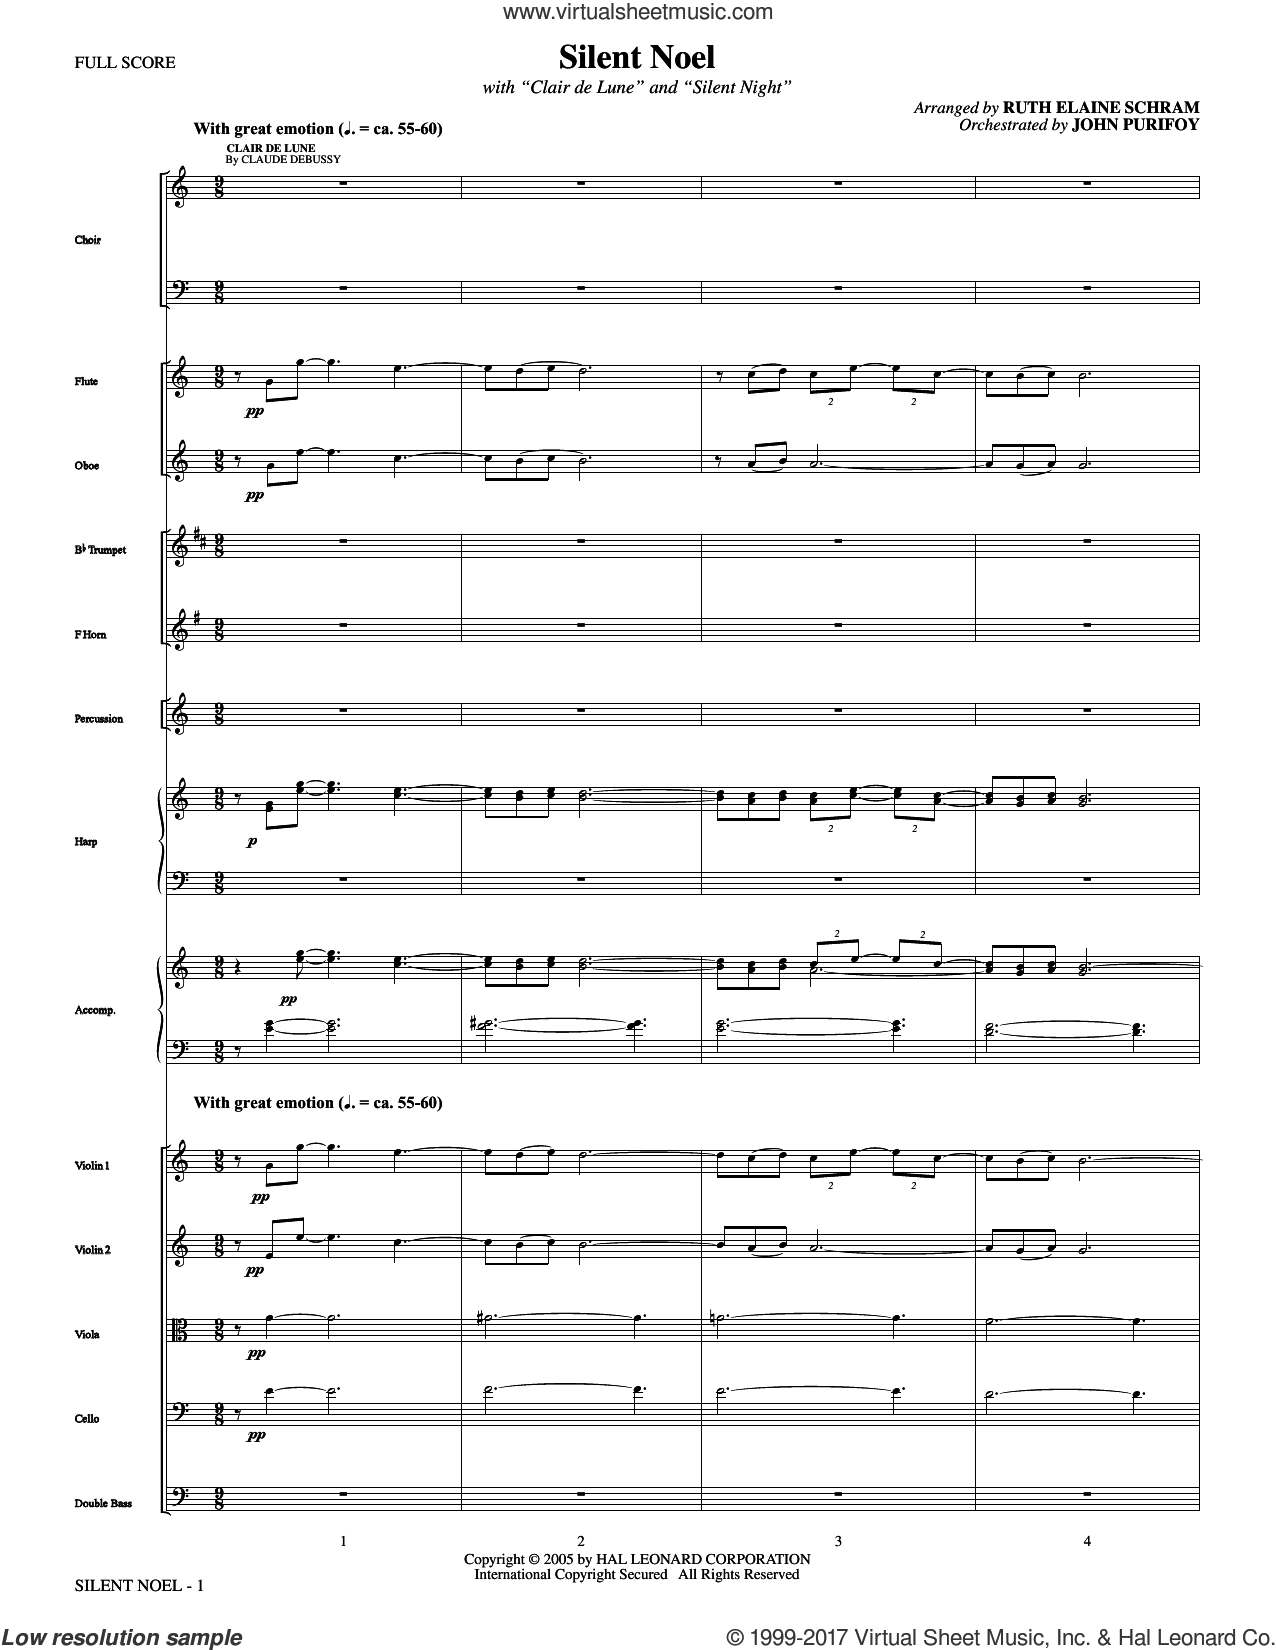 Silent Noel (COMPLETE) sheet music for orchestra/band by Franz Gruber, Claude Debussy, John F. Young (trans.), Joseph Mohr and Ruth Elaine Schram, intermediate skill level